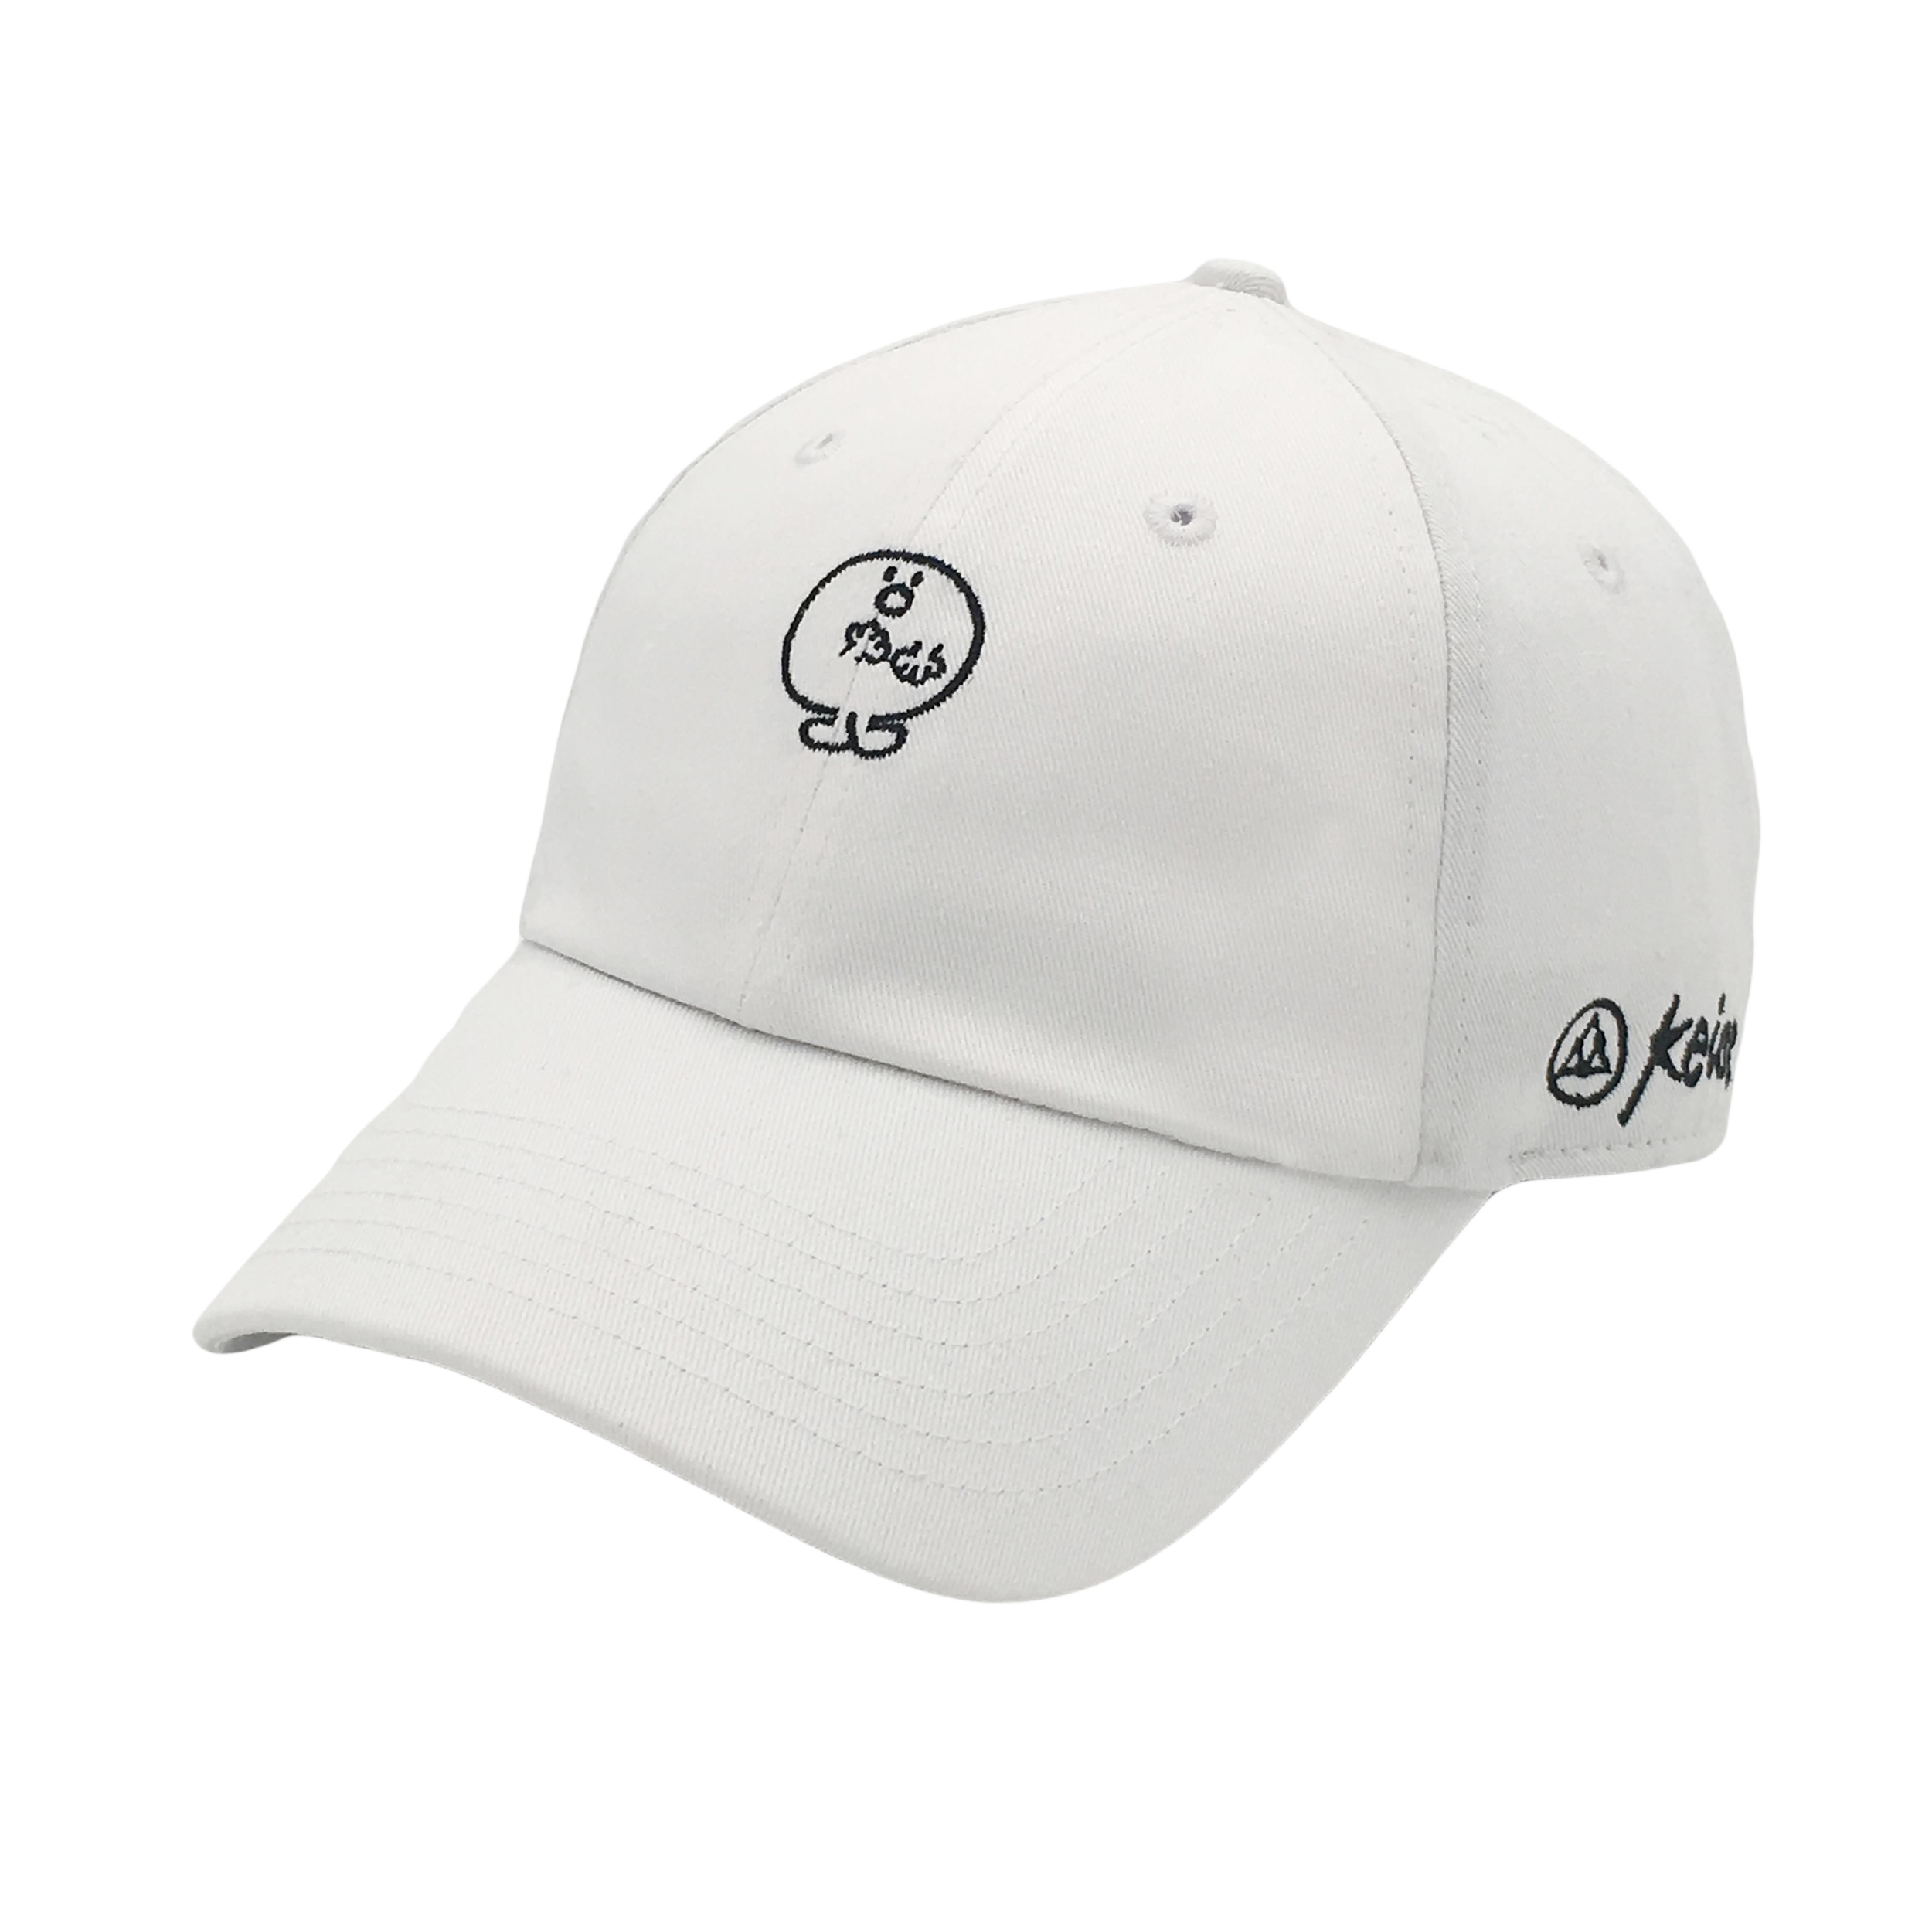 Copy of Copy of Custom Flat Embroidery Streetwear Dad Hat